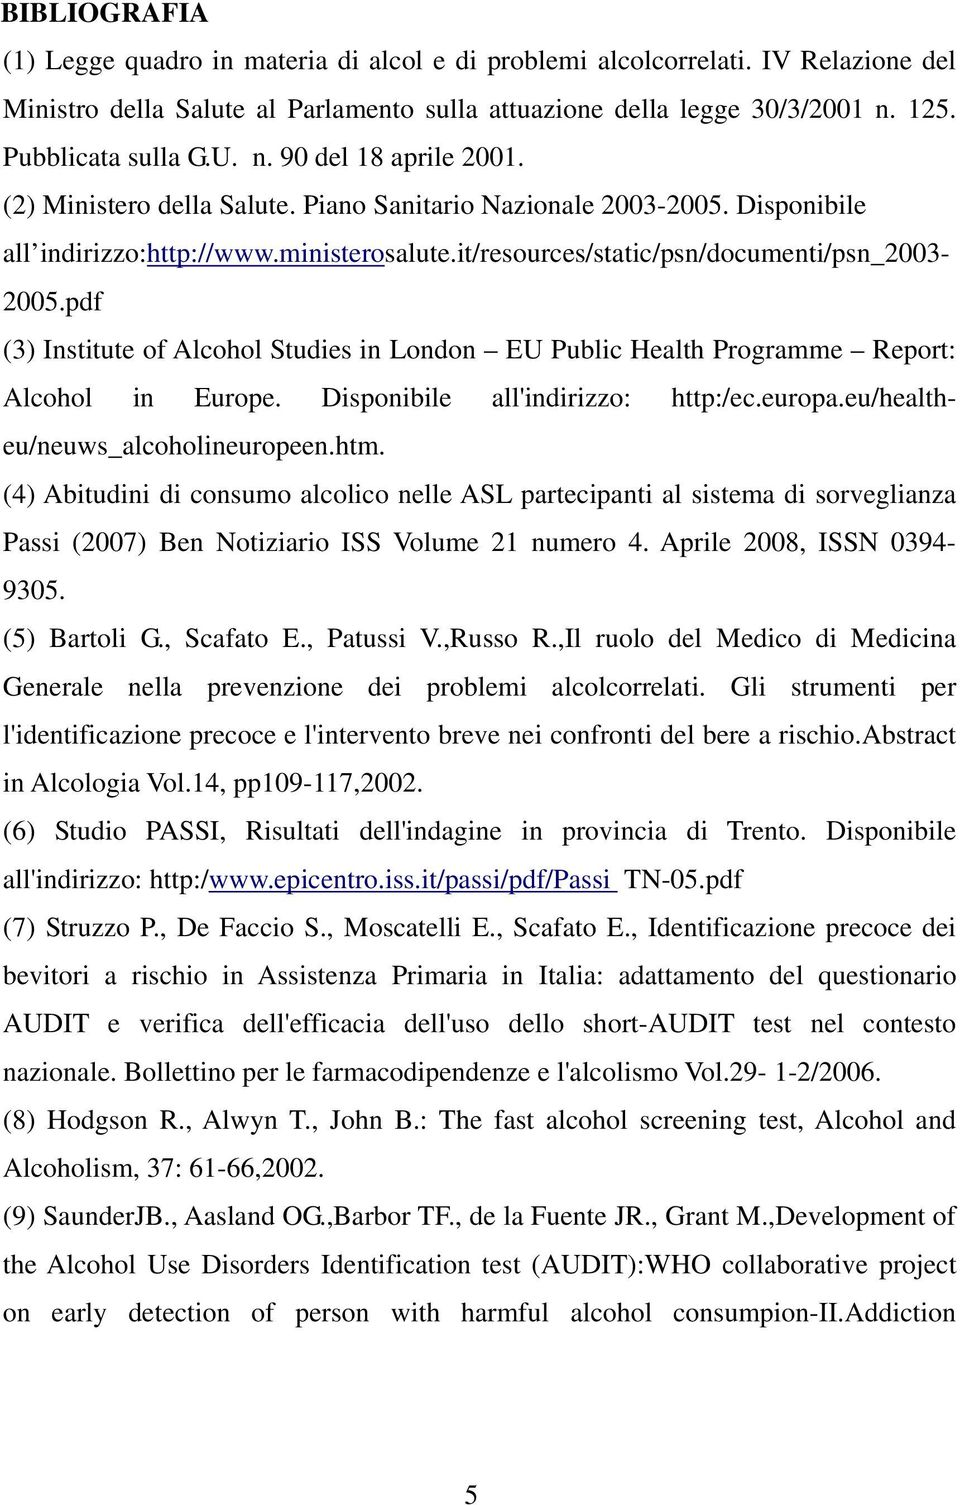 pdf (3) Institute of Alcohol Studies in London EU Public Health Programme Report: Alcohol in Europe. Disponibile all'indirizzo: http:/ec.europa.eu/healtheu/neuws_alcoholineuropeen.htm.